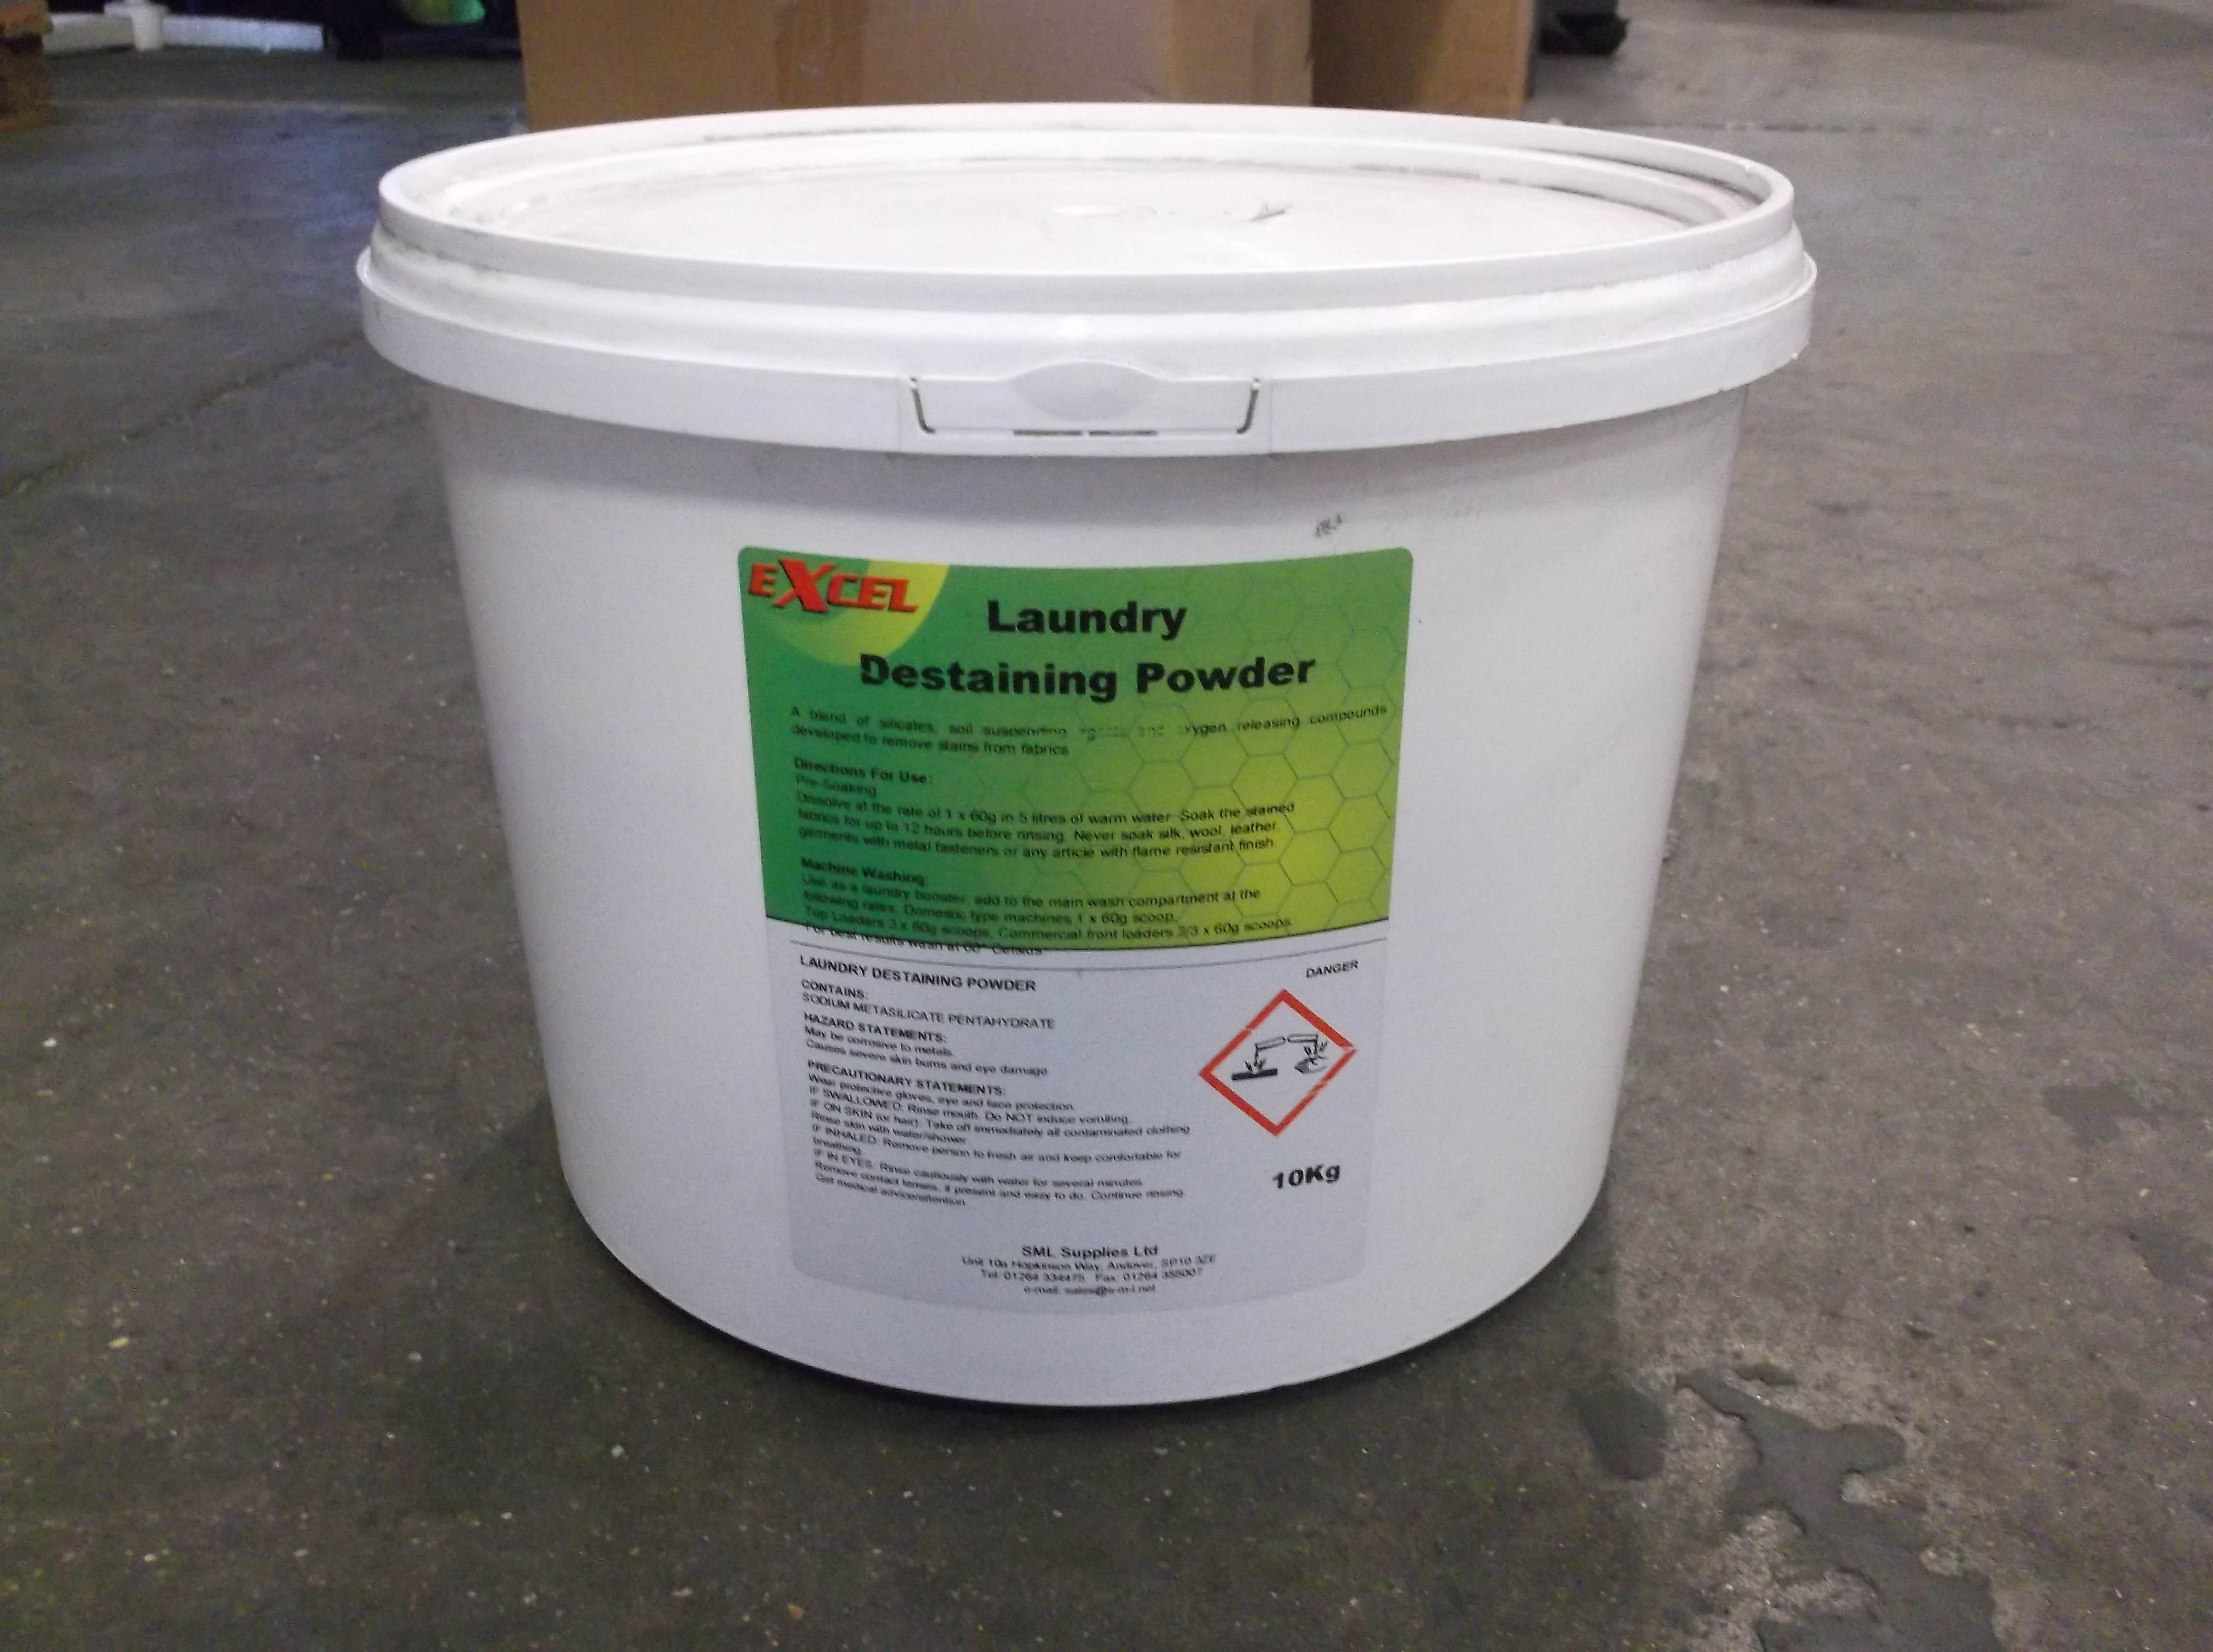 Excel Laundry Destaining Powder - 10kg